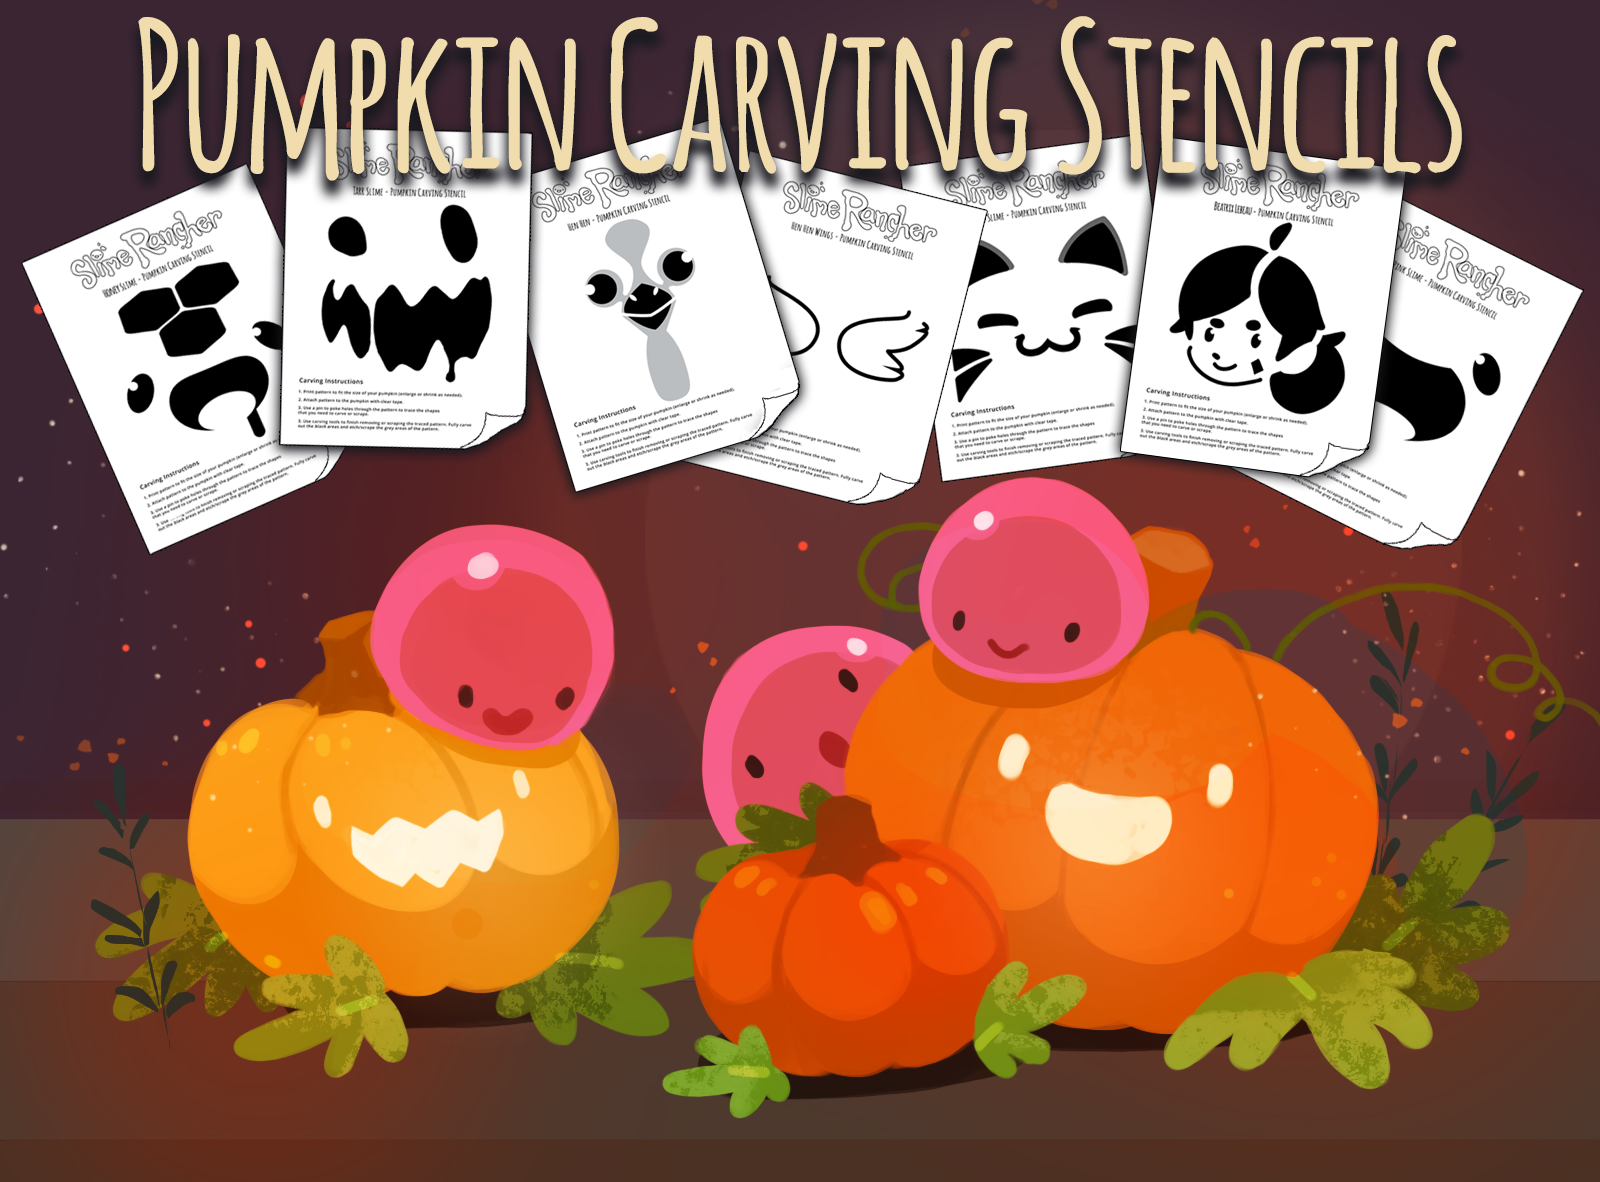 2020 Pumpkin Carving Stencils Are Here!